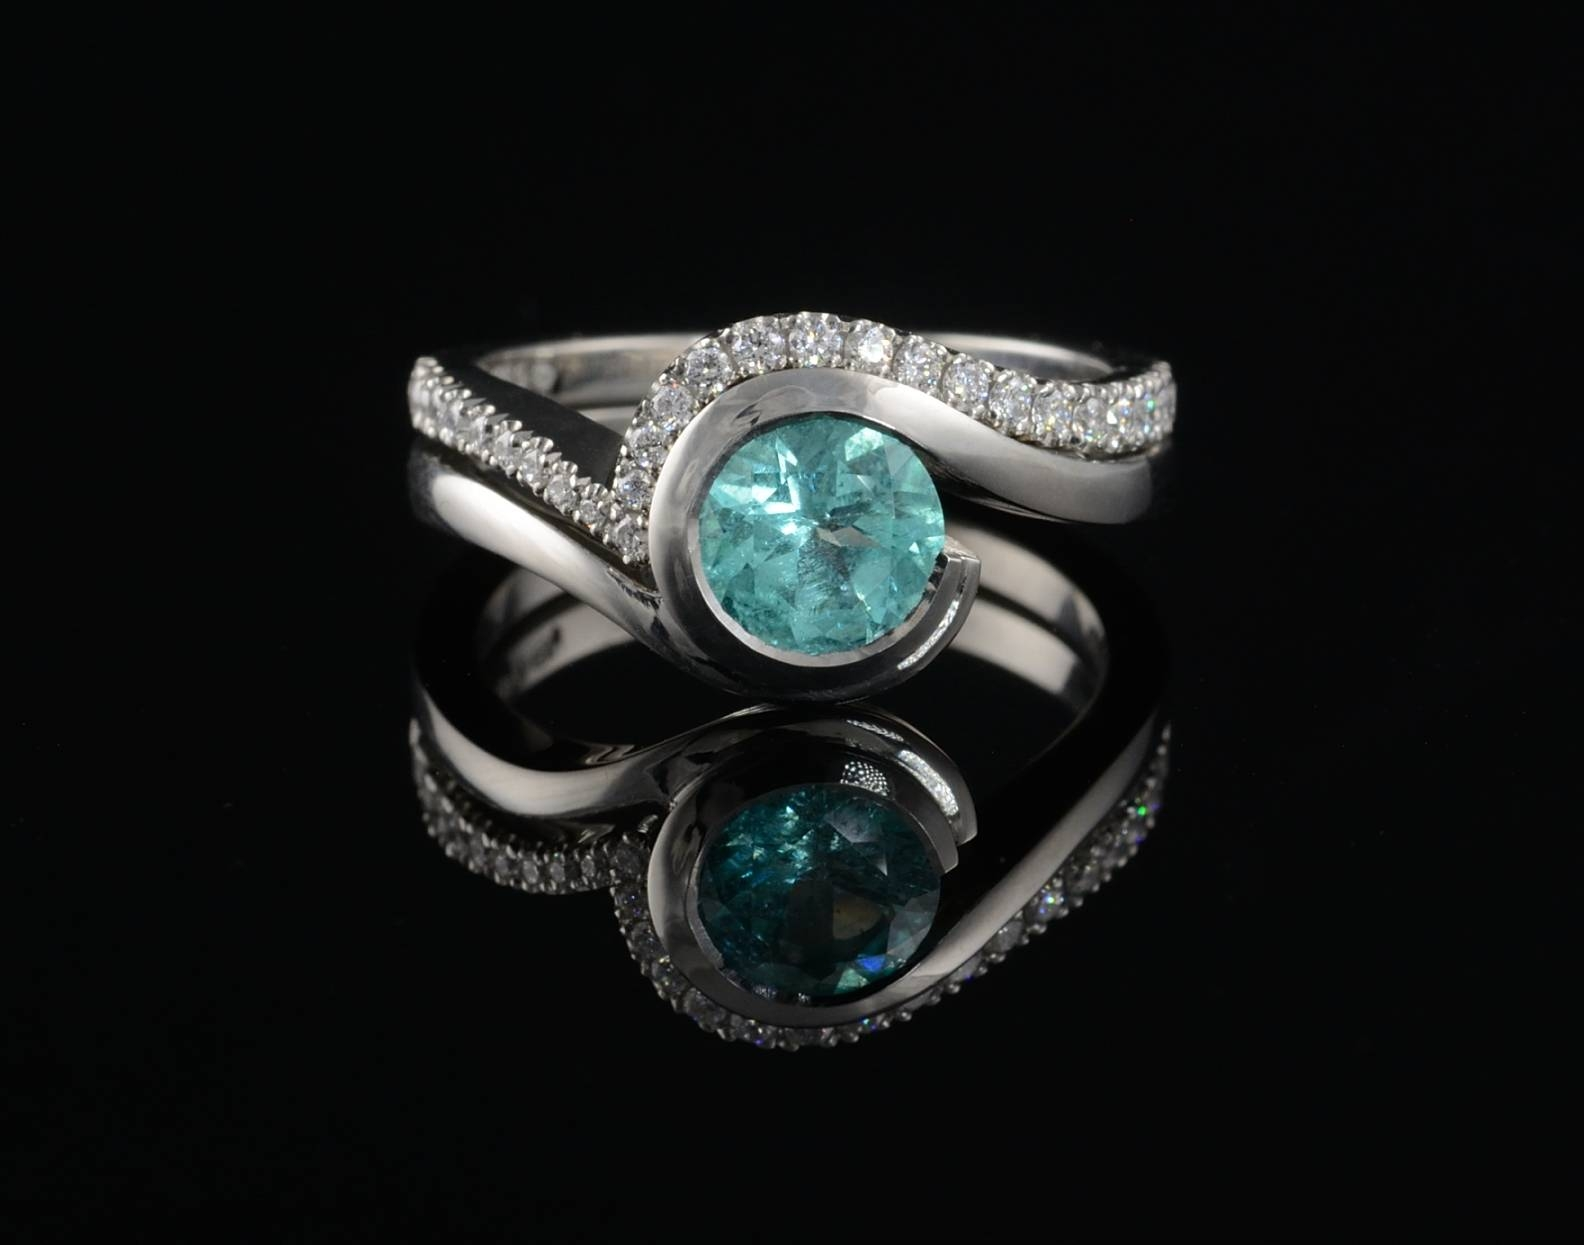 Engagement Rings : Cool Design Ideas Fake Wedding Rings Awesome Pertaining To Weird Wedding Rings (View 11 of 15)